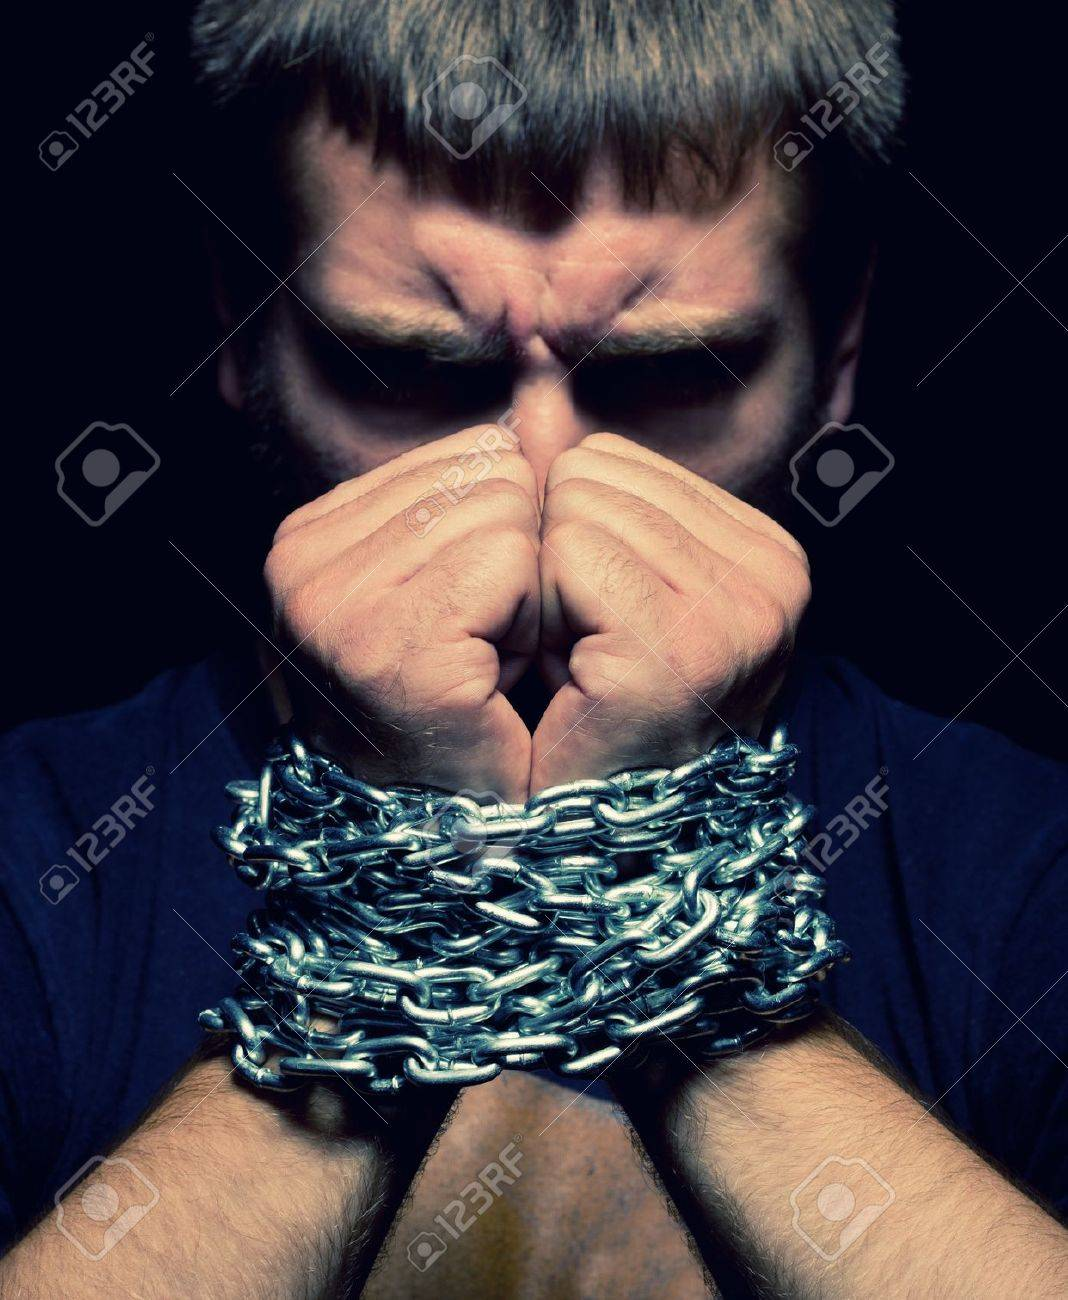 Angry man with chained hands Stock Photo - 18055173